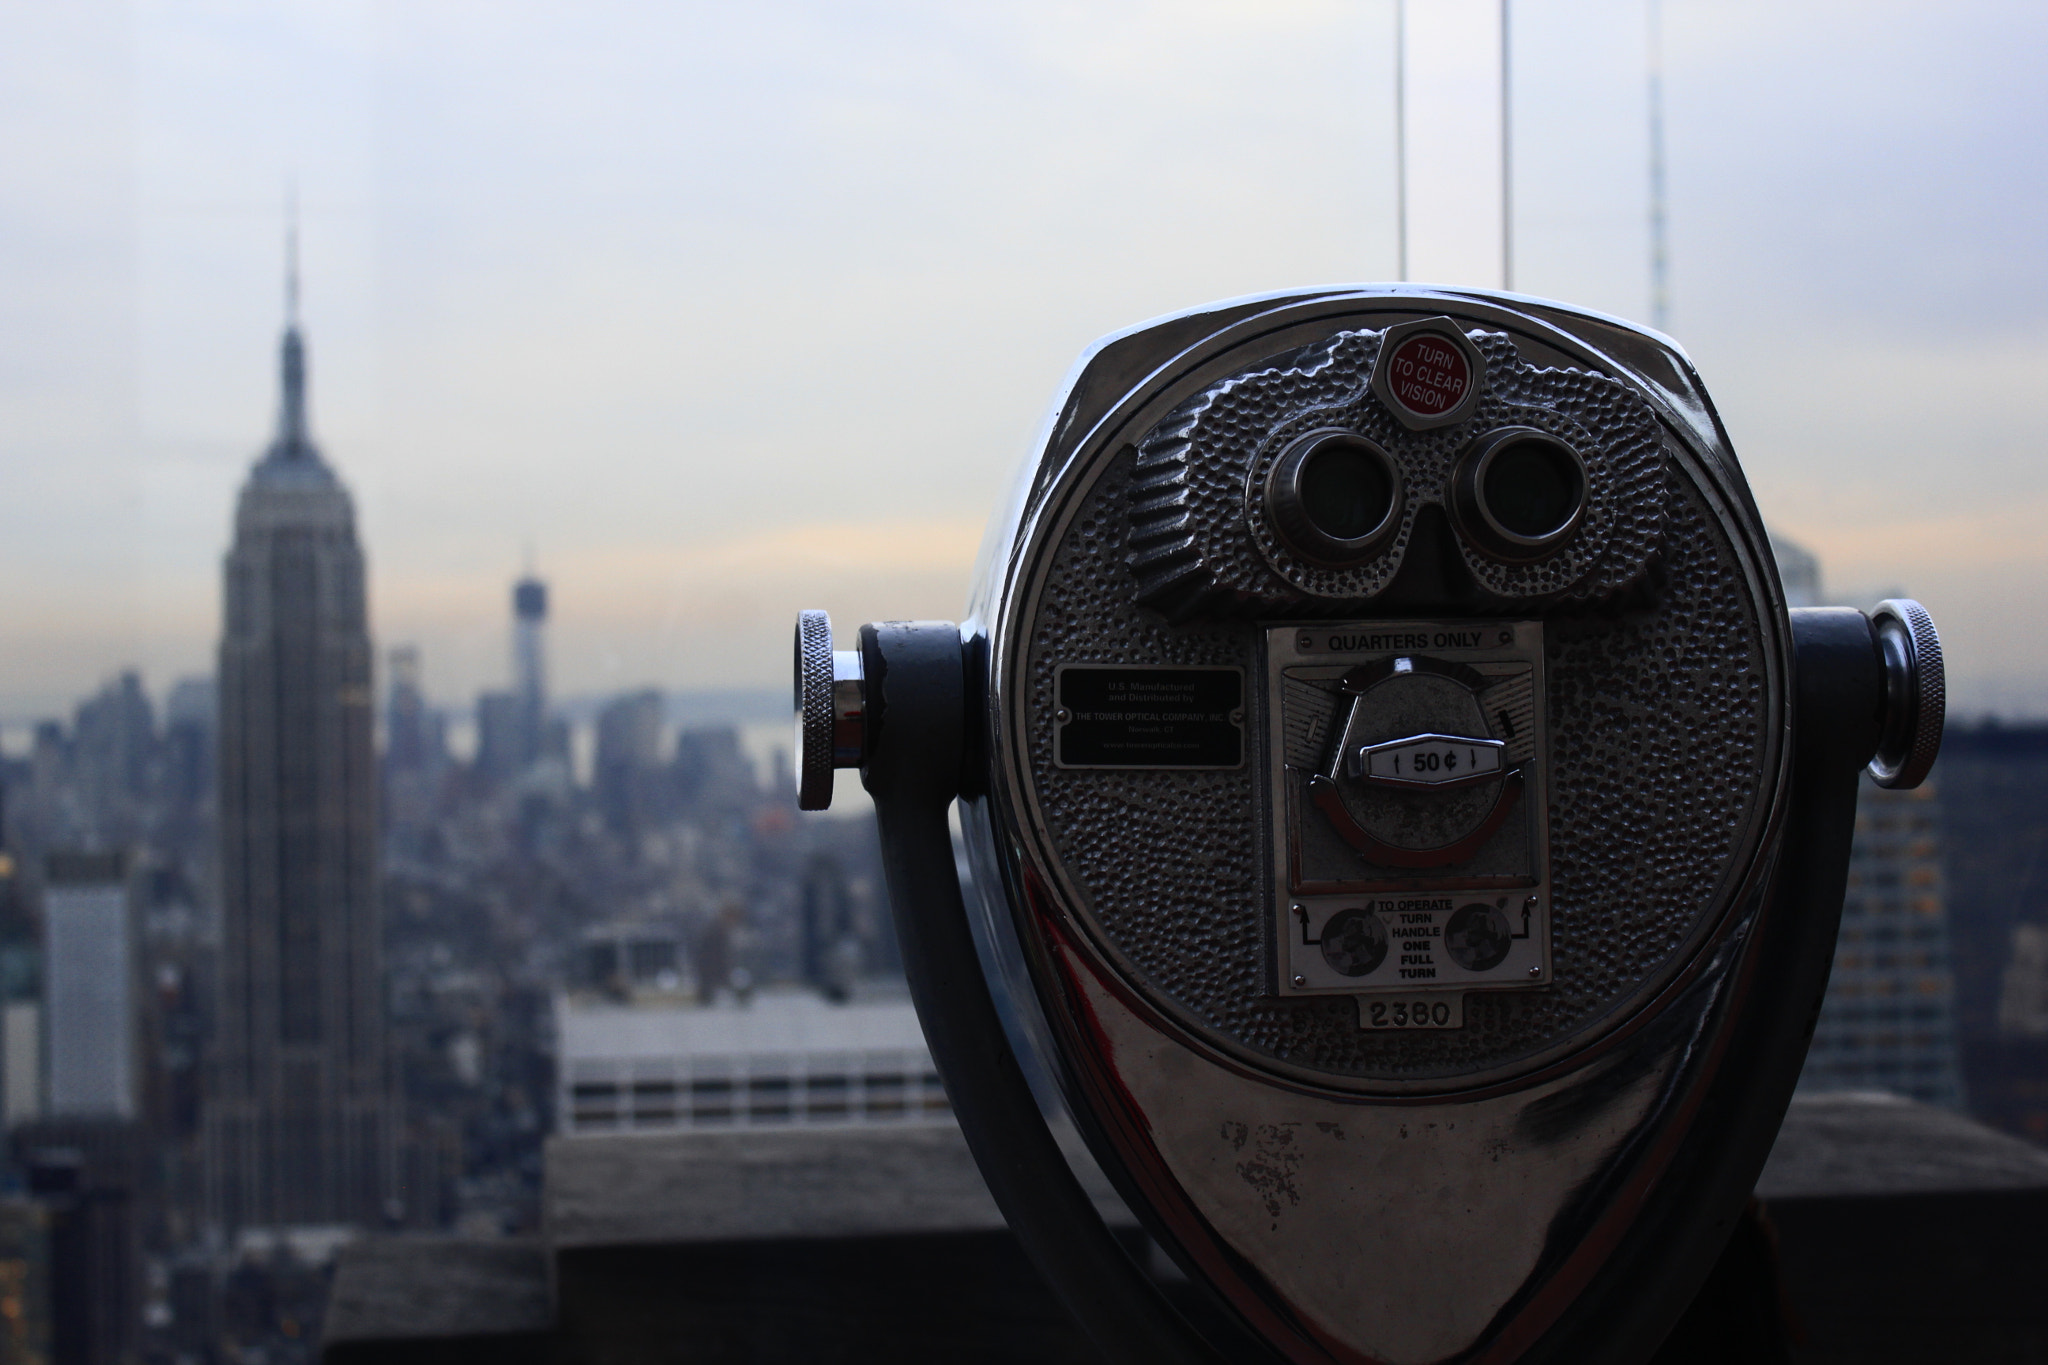 Photograph Top of the Rock at Rockefeller Center by TC Fine on 500px